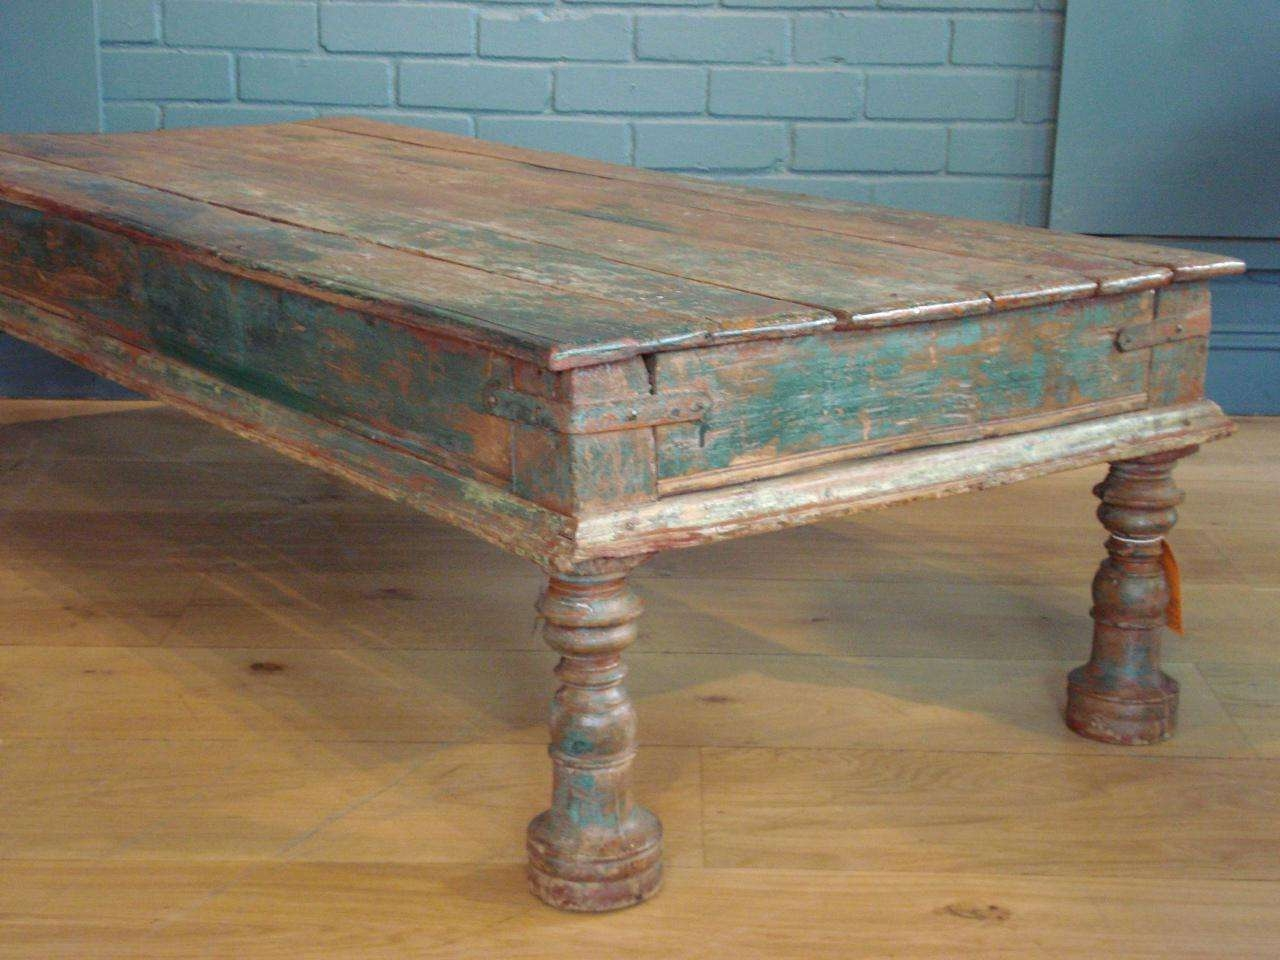 Indian Coffee Table Ideal For Large Room Trend Coffee Table For With Regard To Trendy Indian Coffee Tables (View 5 of 20)